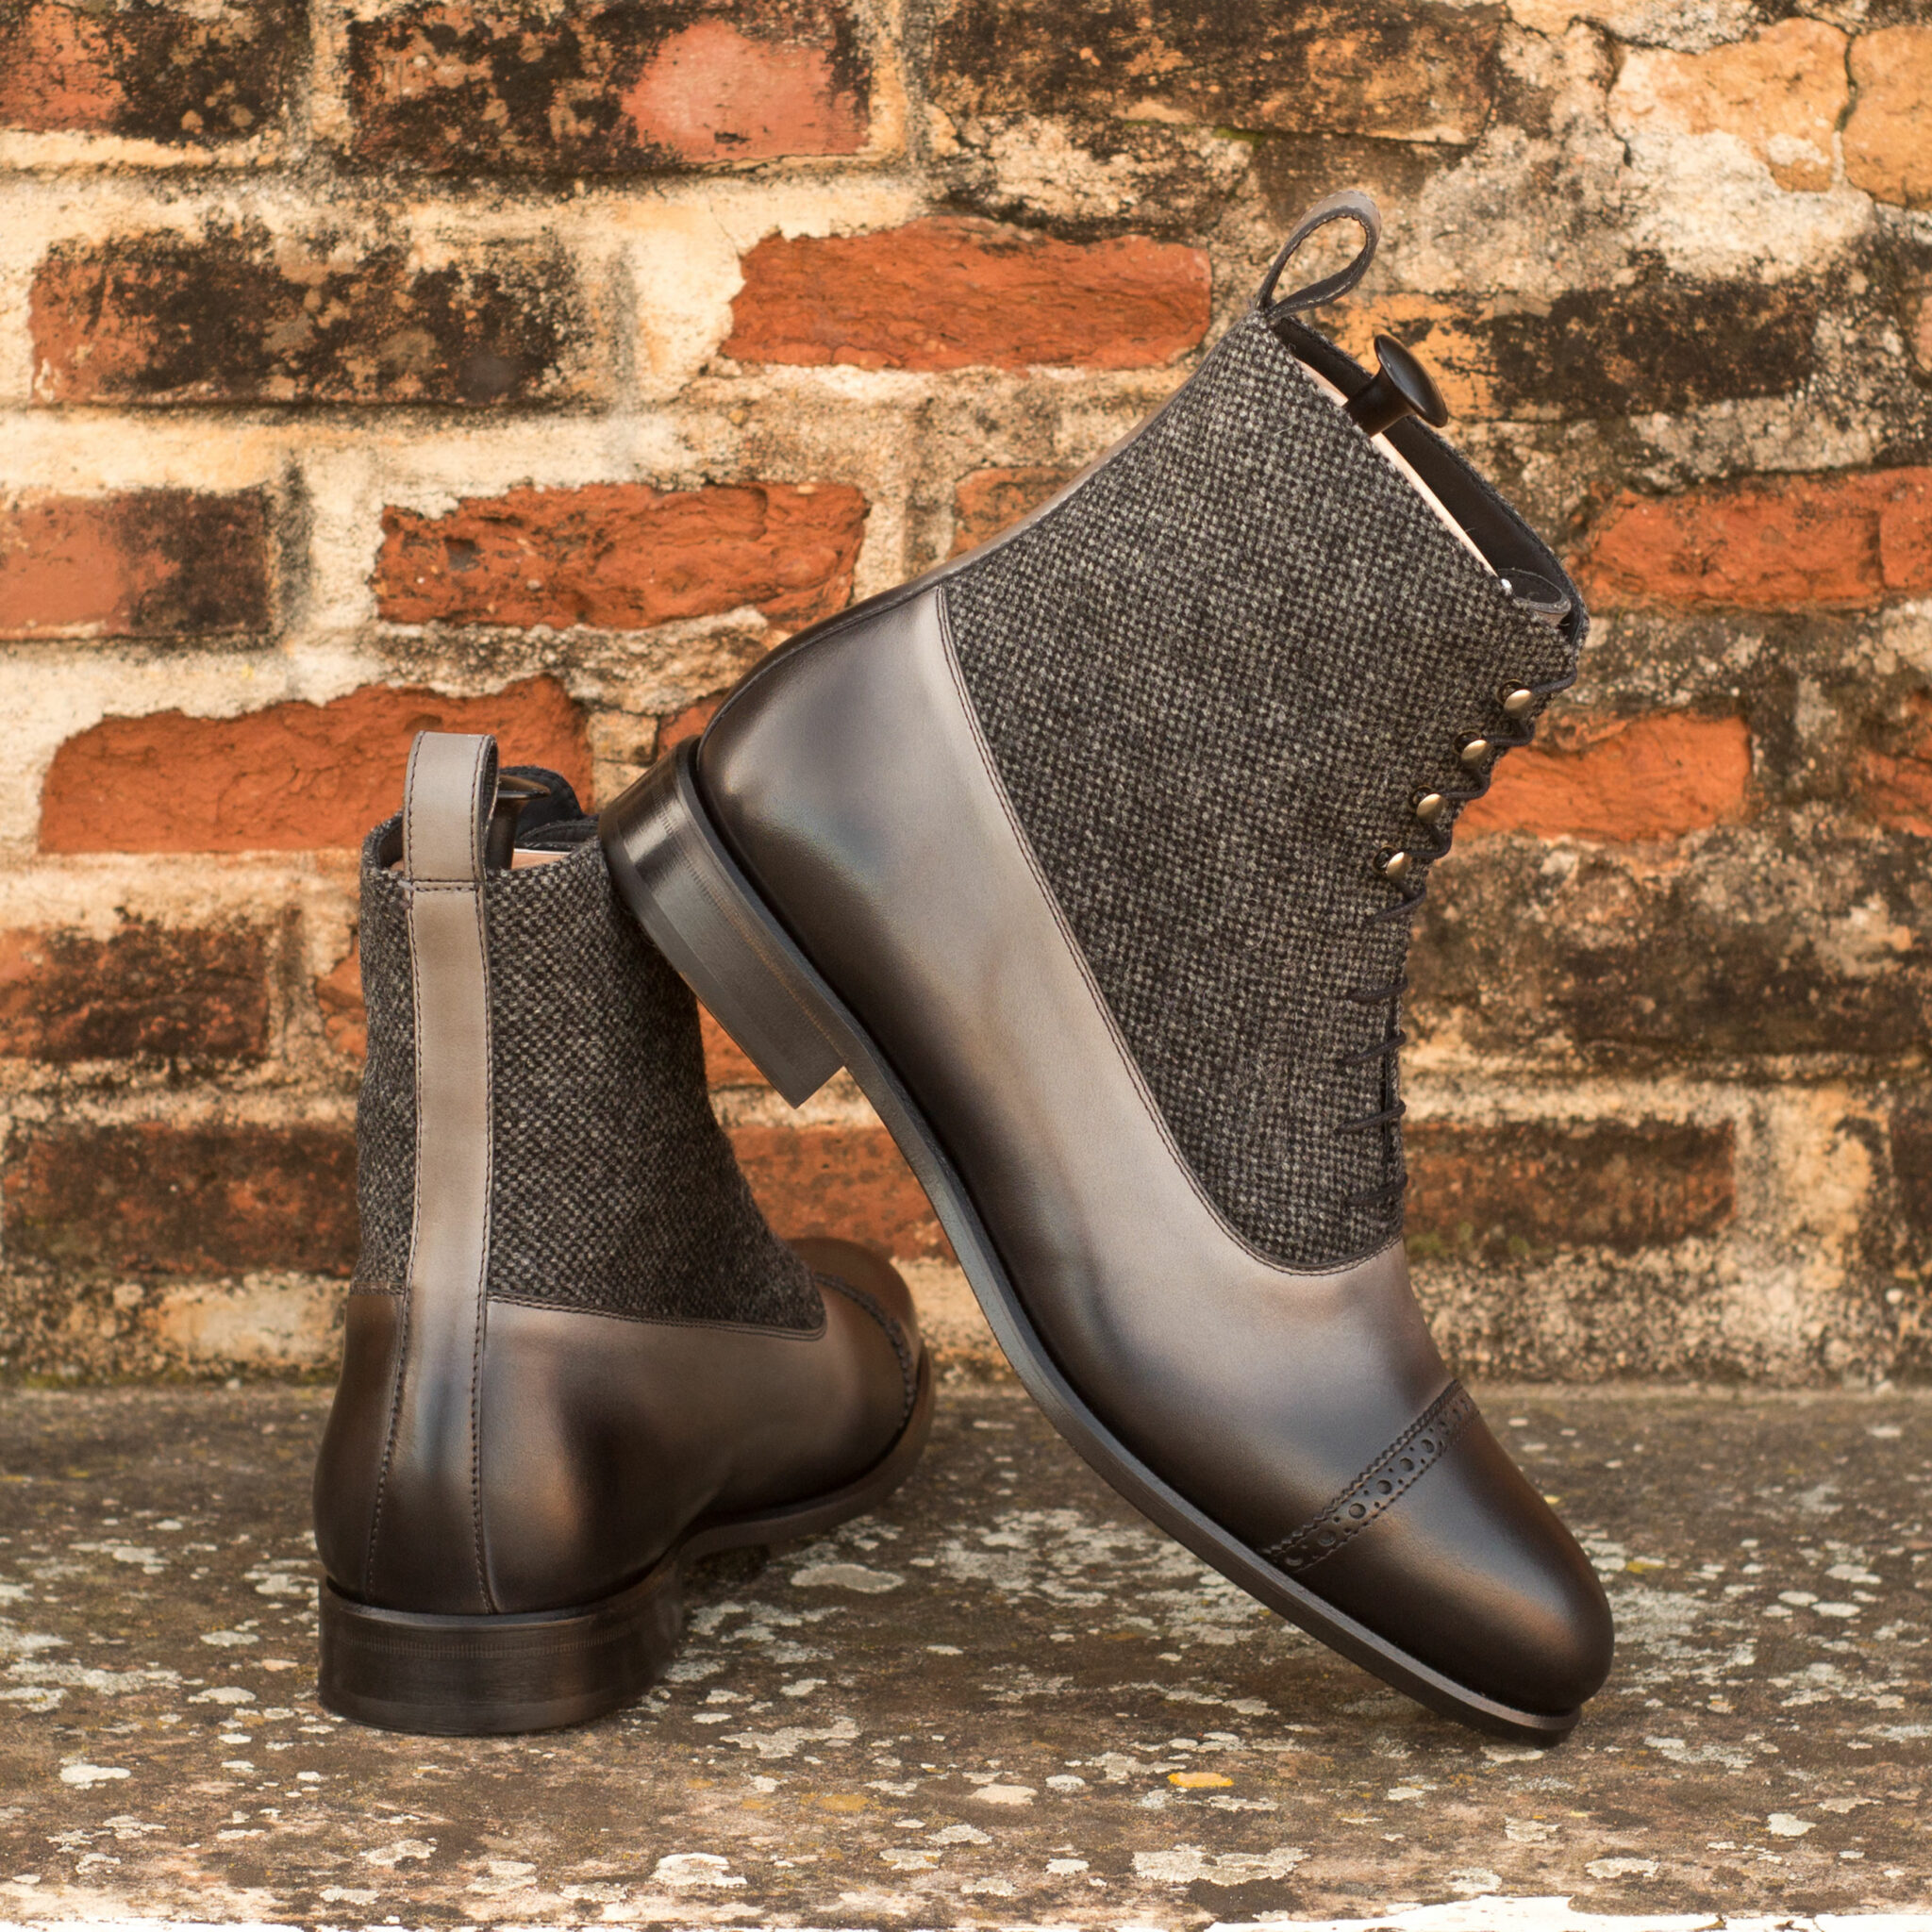 Balmoral boot nailhead sartorial + grey painted calf : 260€